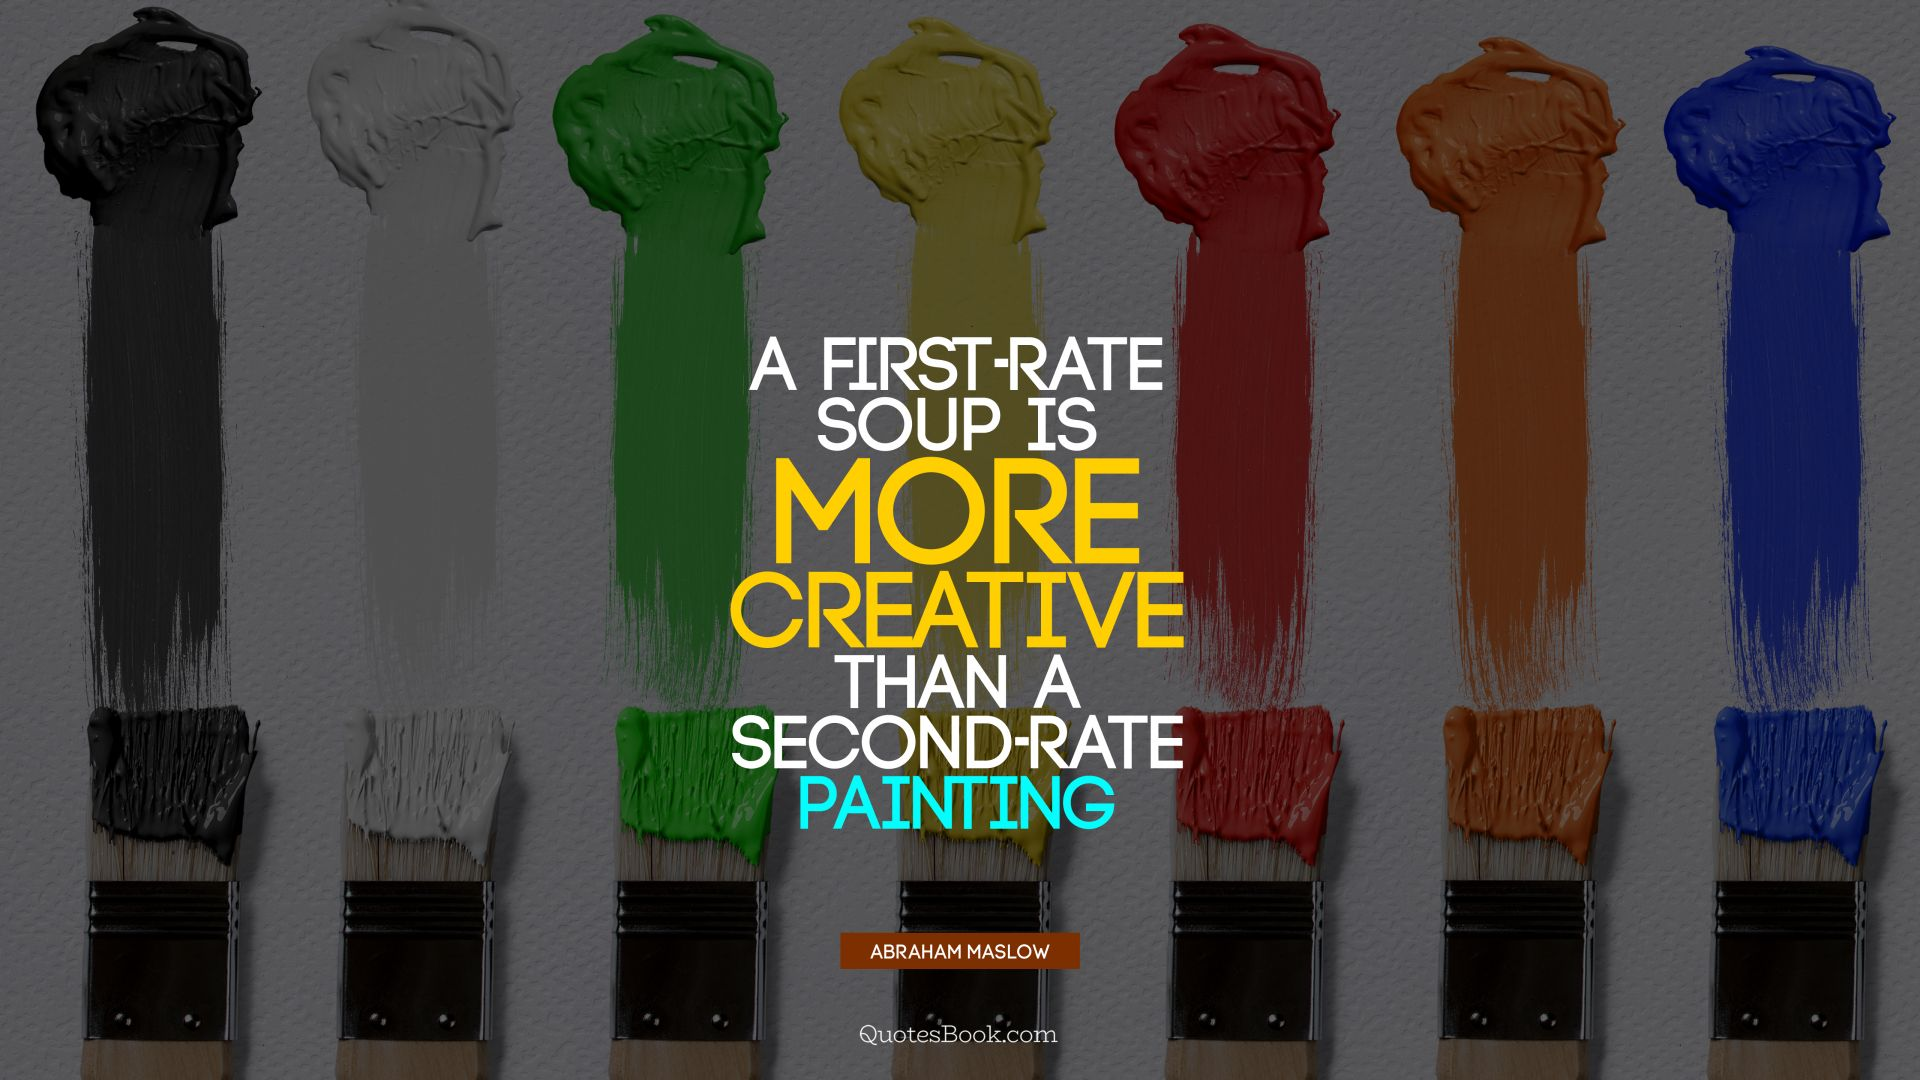 A first-rate soup is more creative than a second-rate painting. - Quote by Abraham Maslow